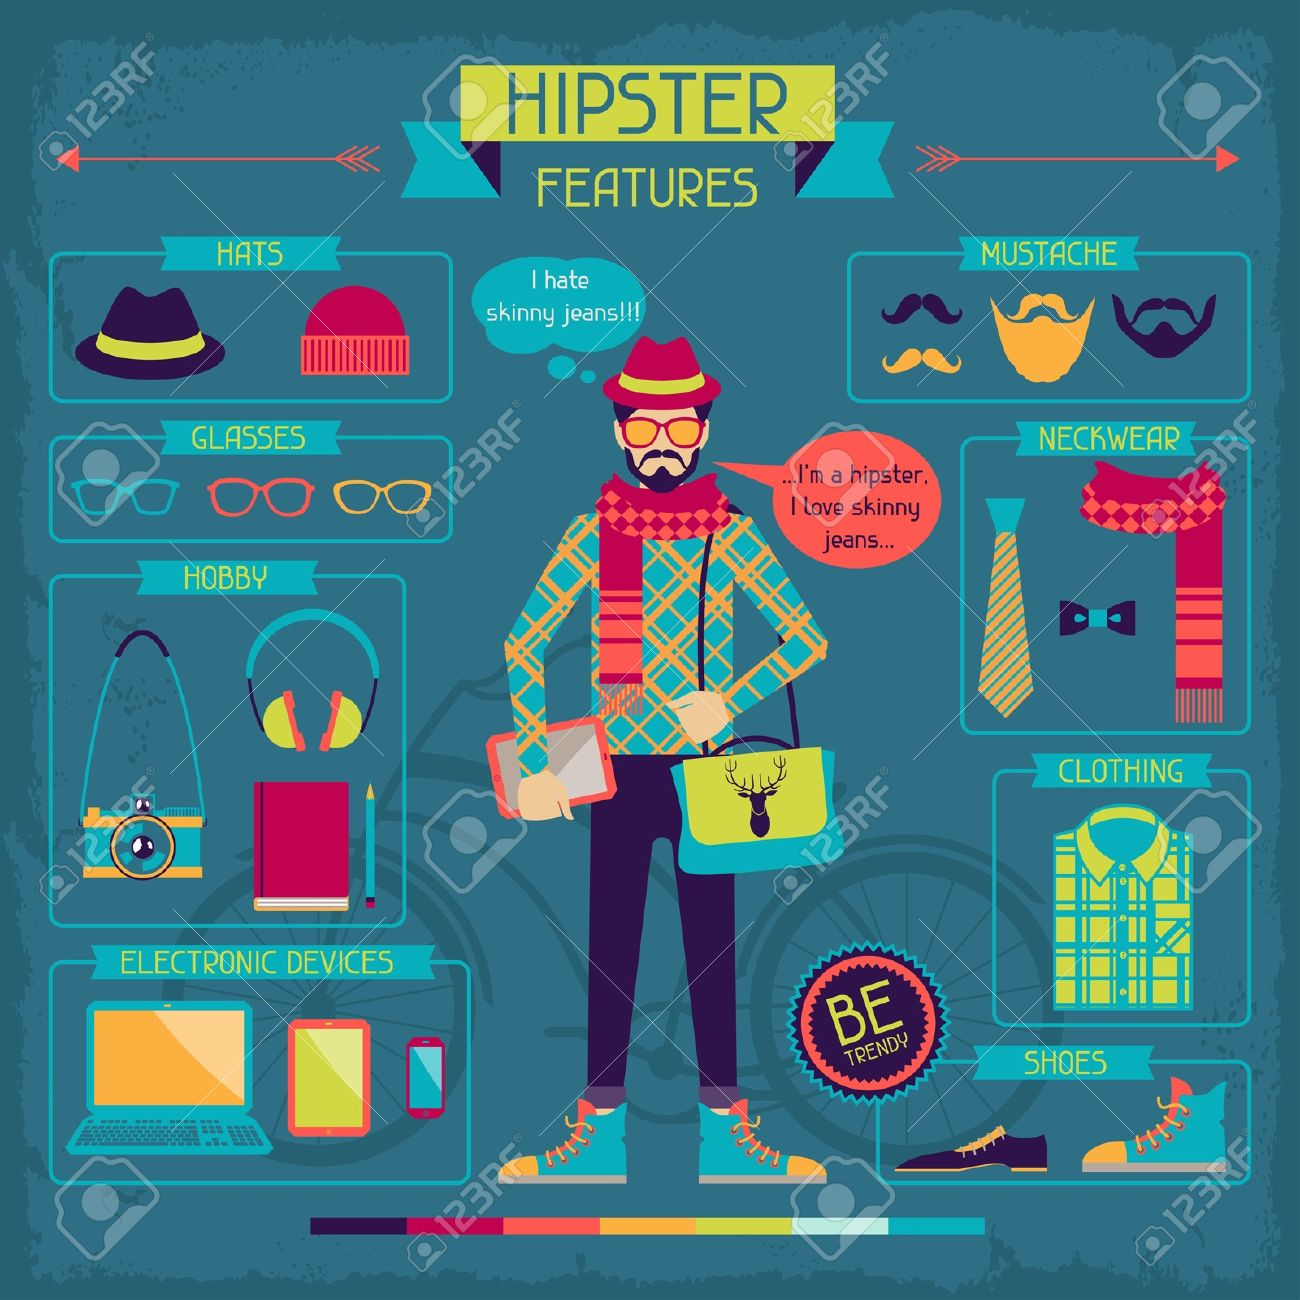 Infographic elements in retro style. Hipster features. Stock Vector - 20916189